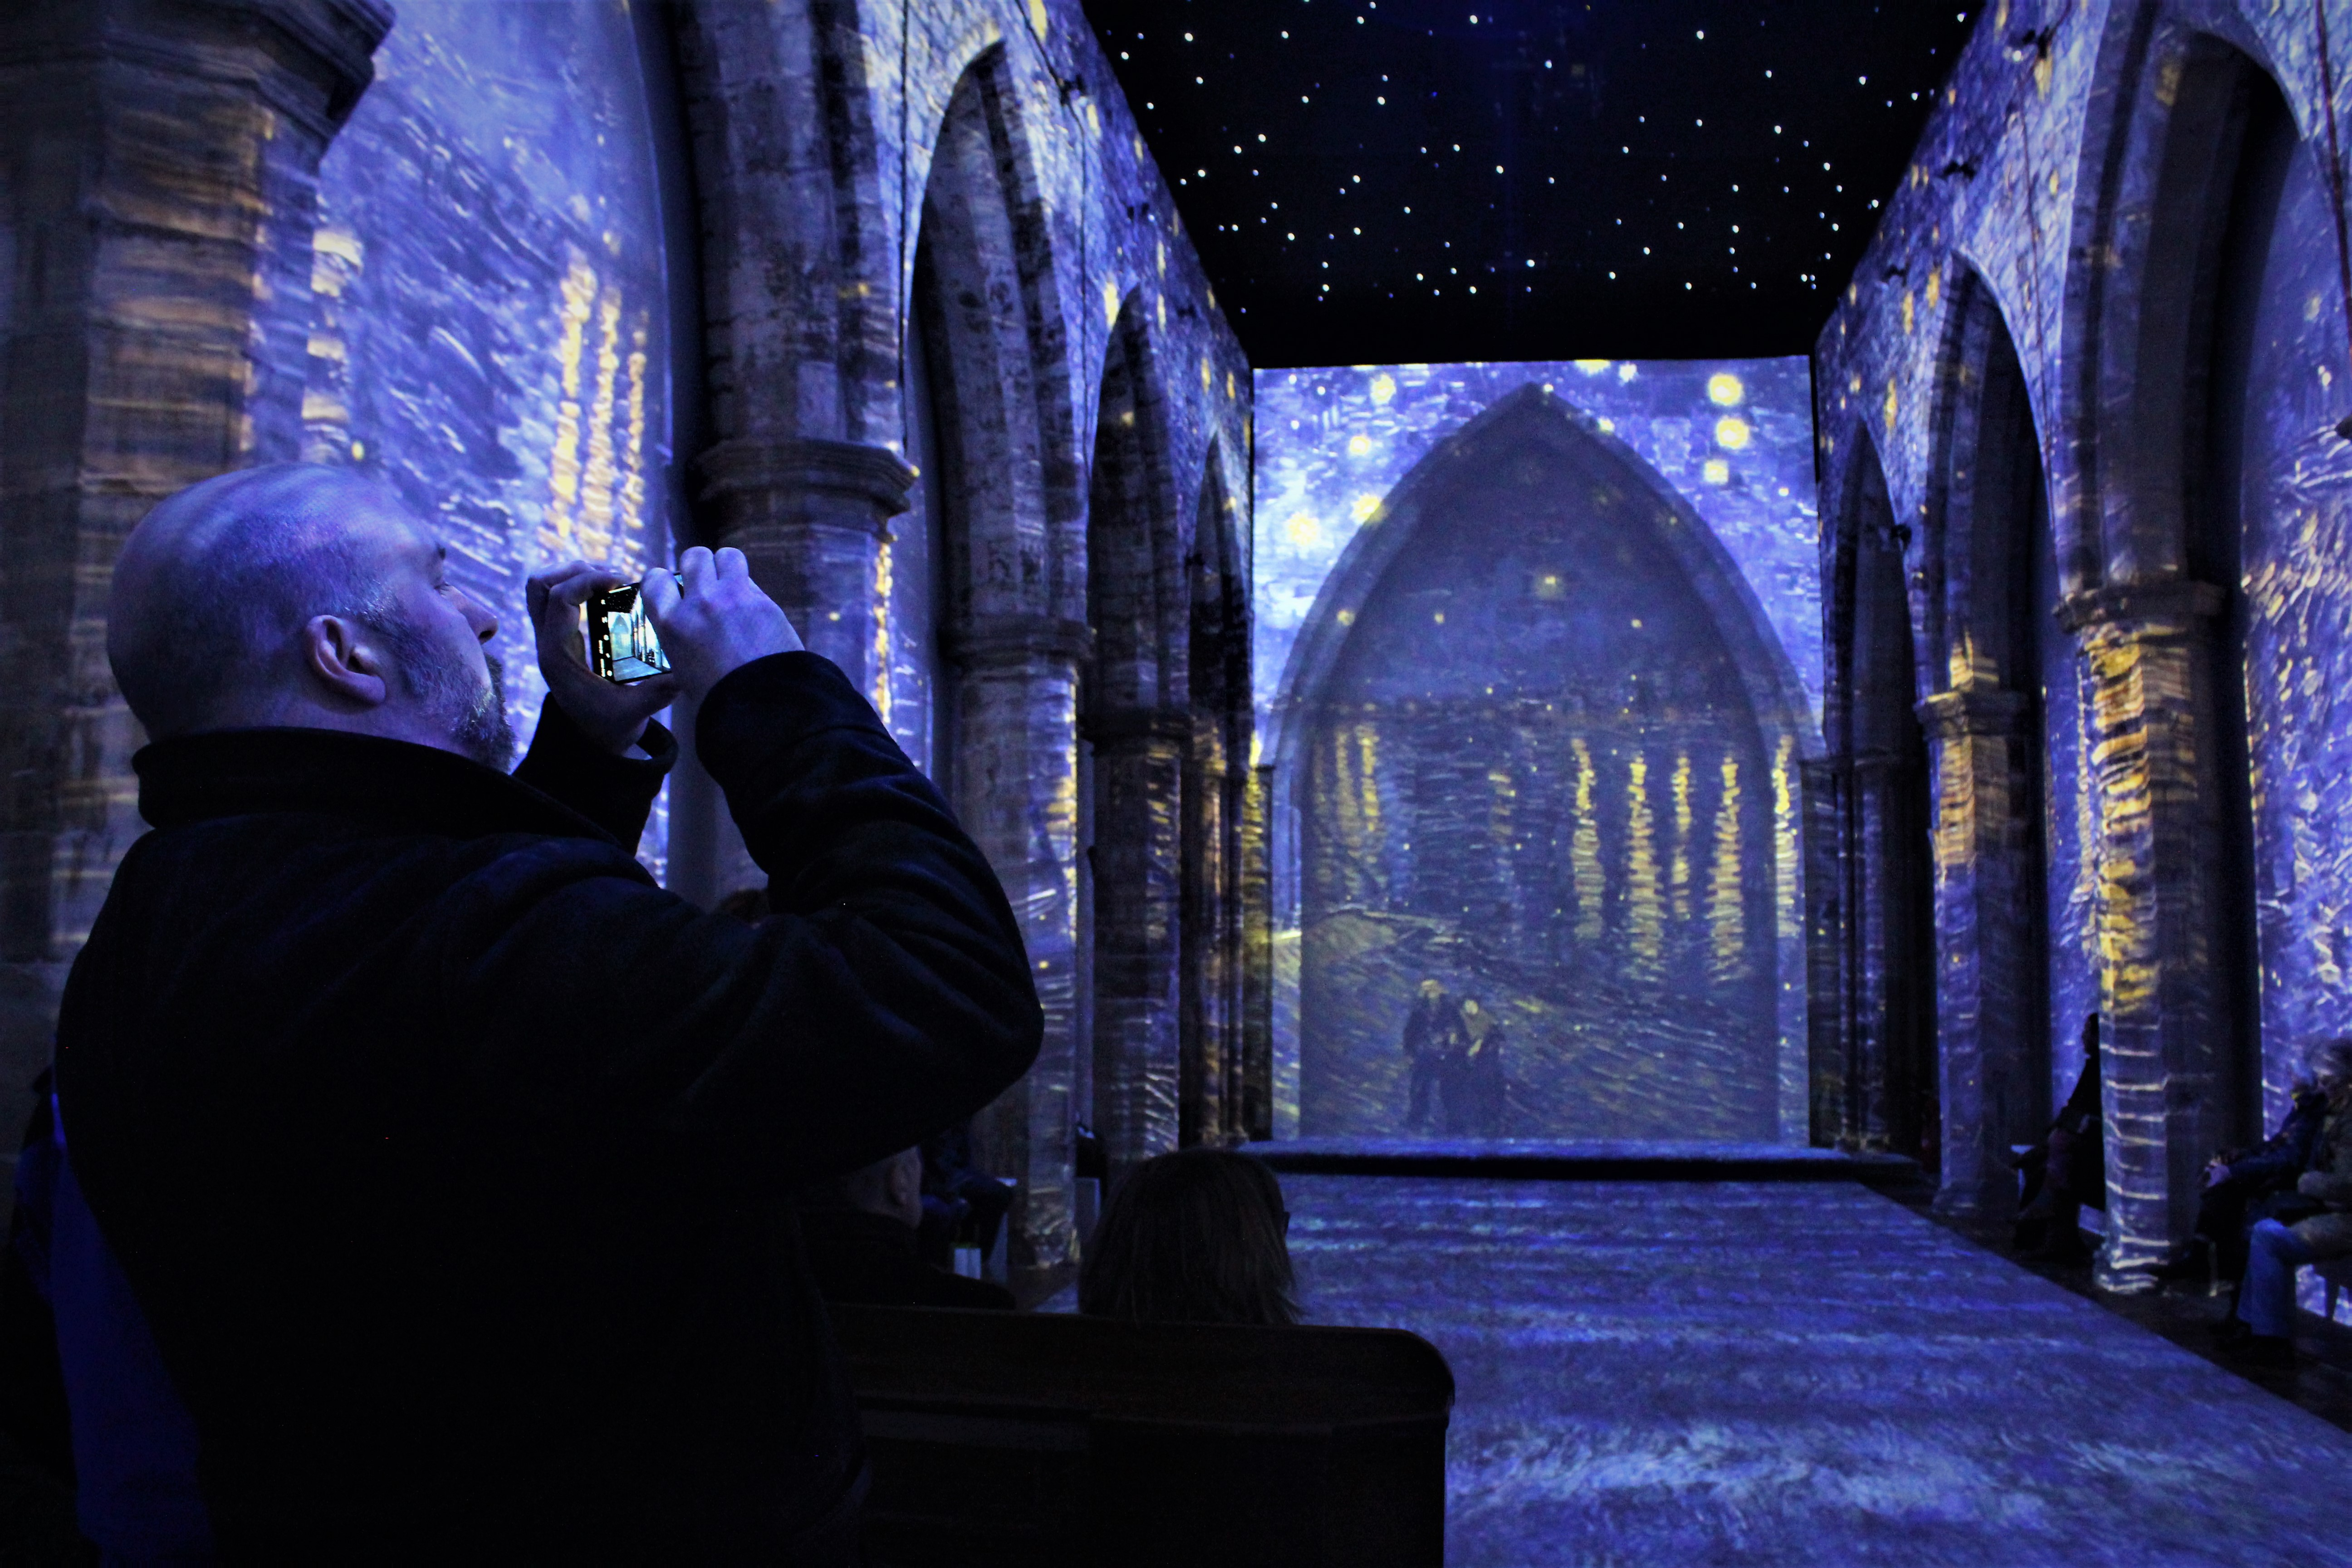 As lockdown restrictions are eased, Leicester's most exciting temporary exhibition is preparing to re-open to the public.